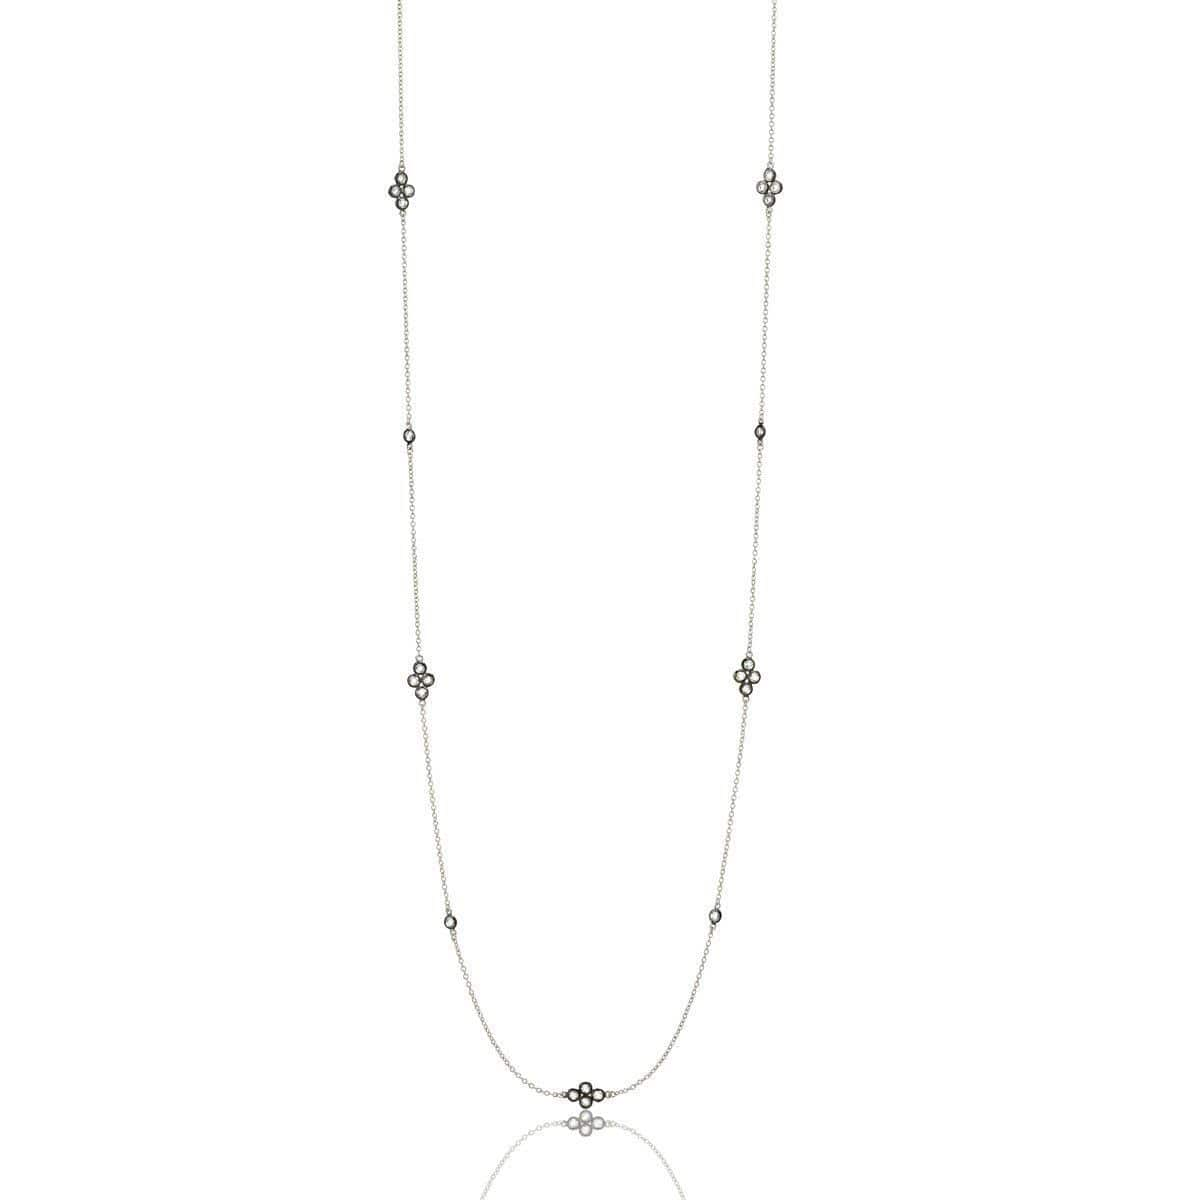 Signature Four Point Station Necklace - PRZ070055-40